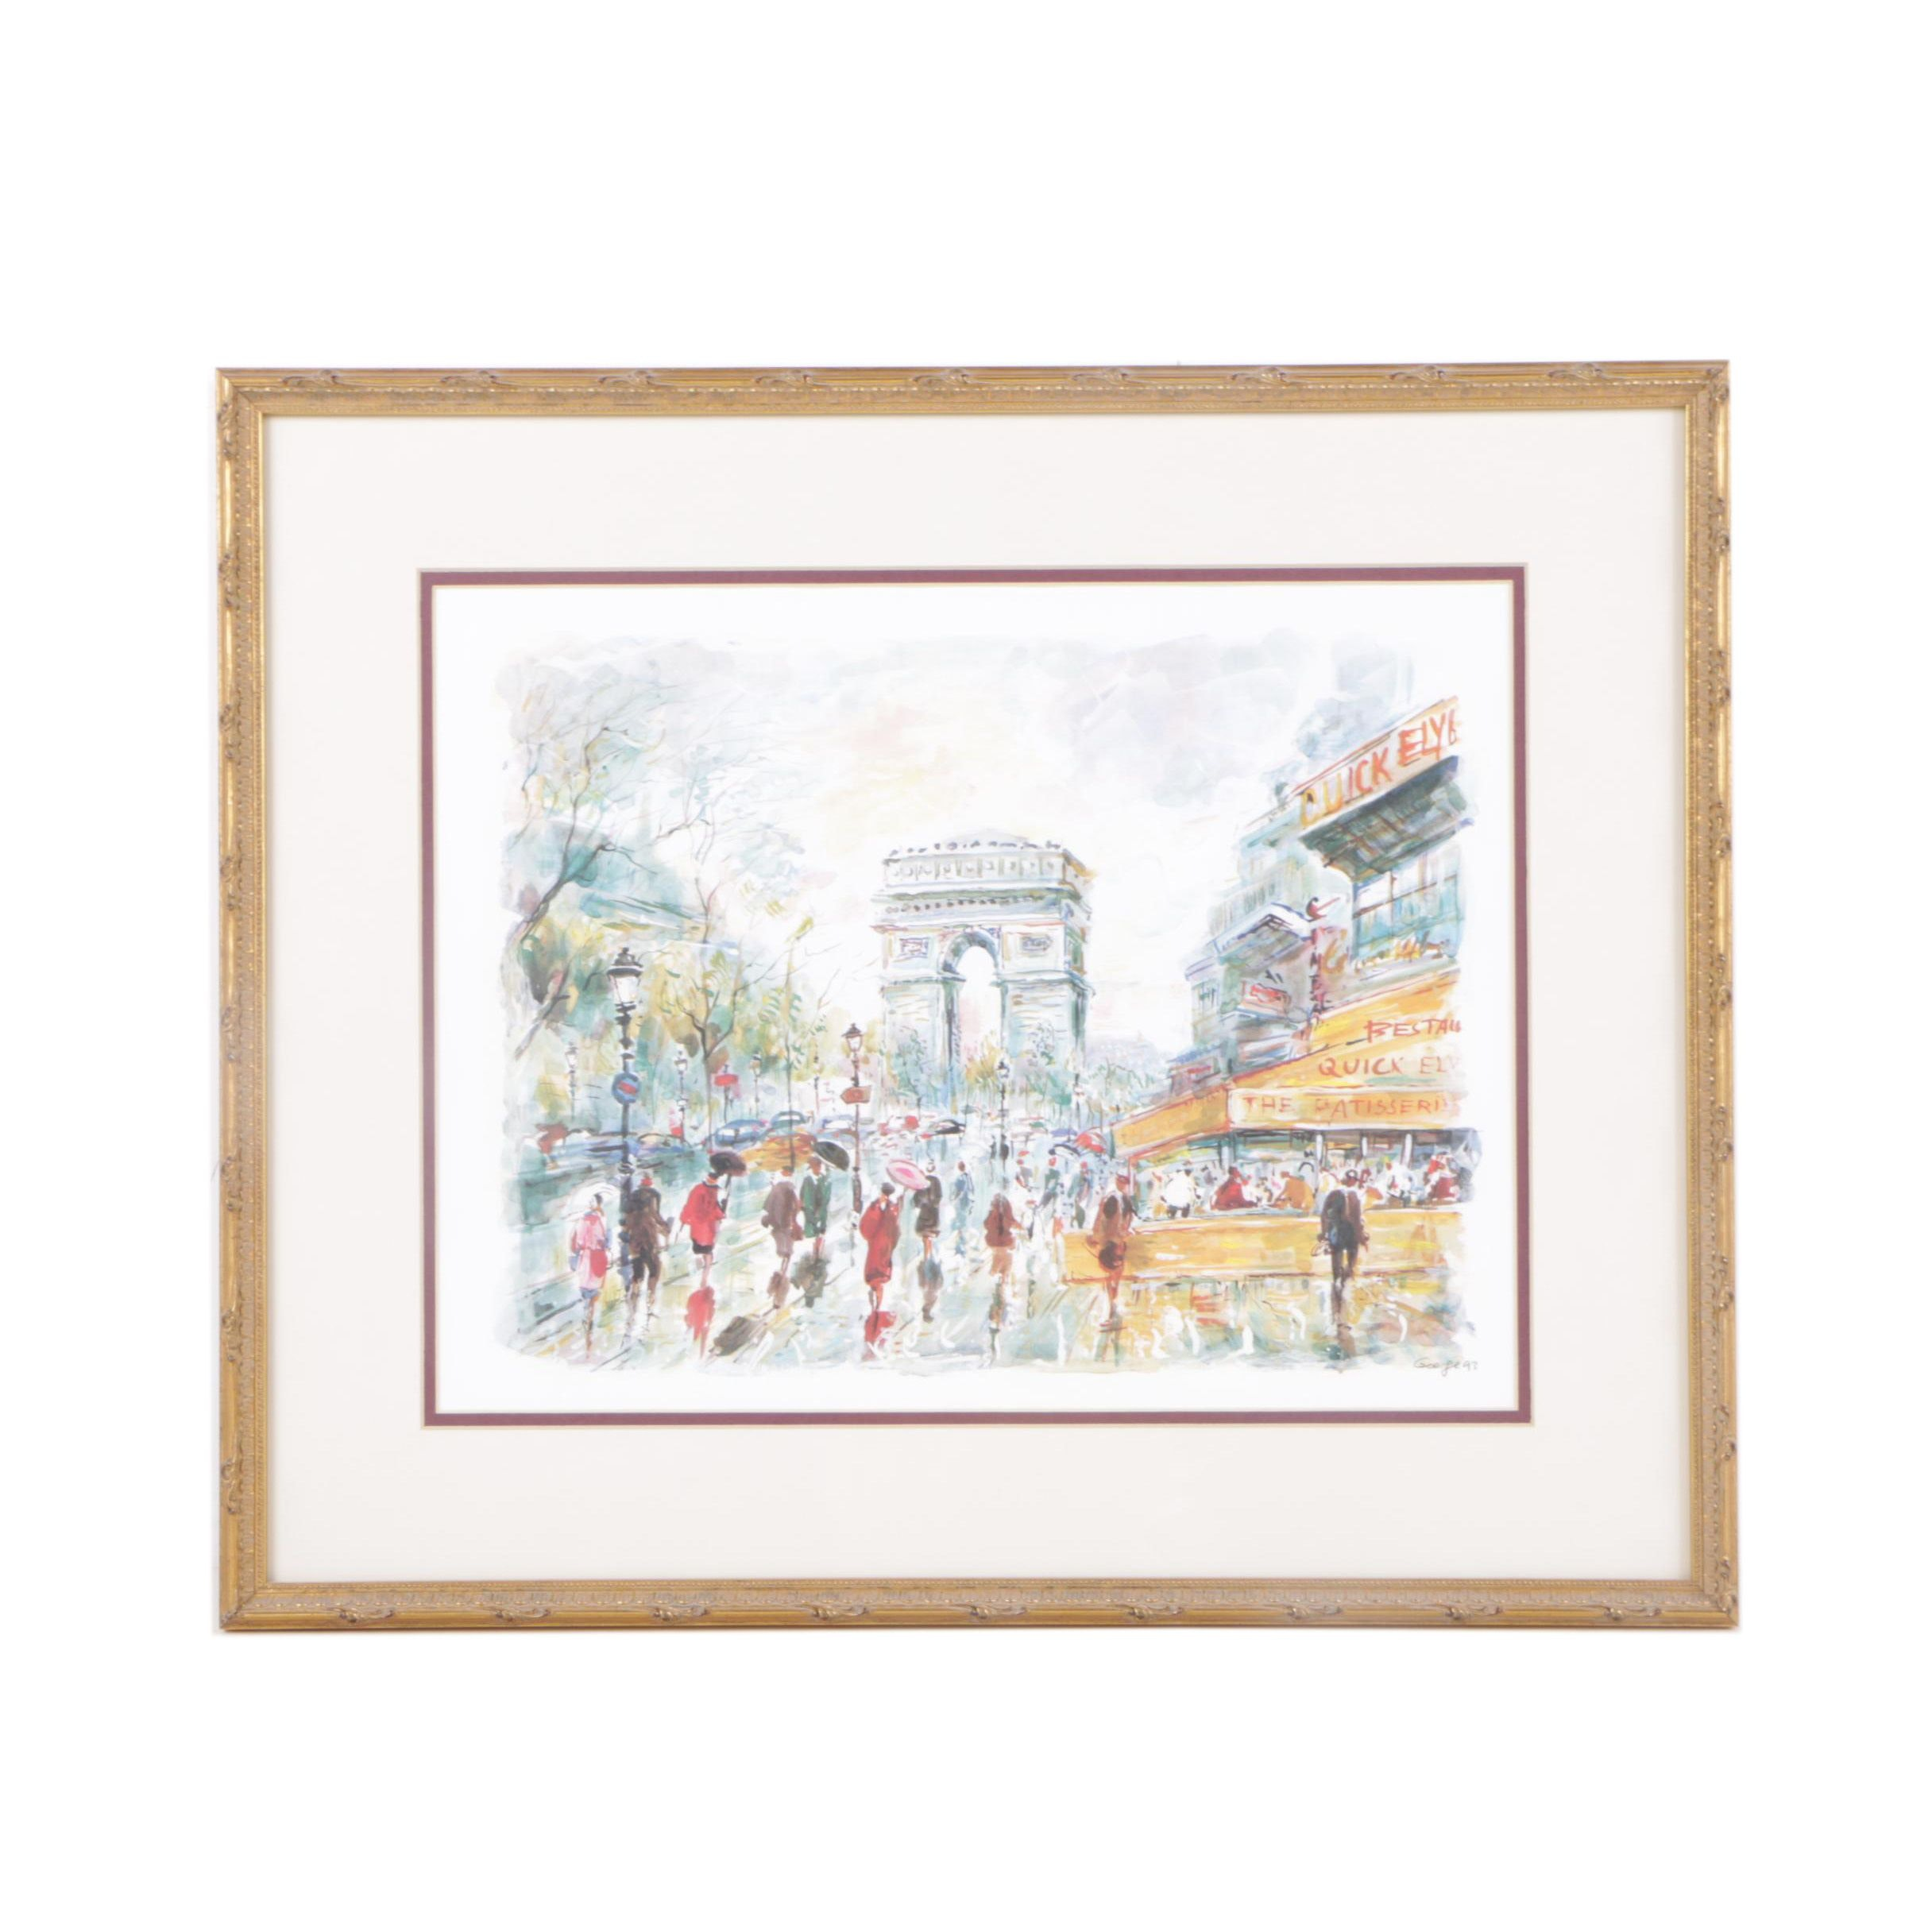 Signed and Framed Offset Lithograph of l'Arc de Triomphe